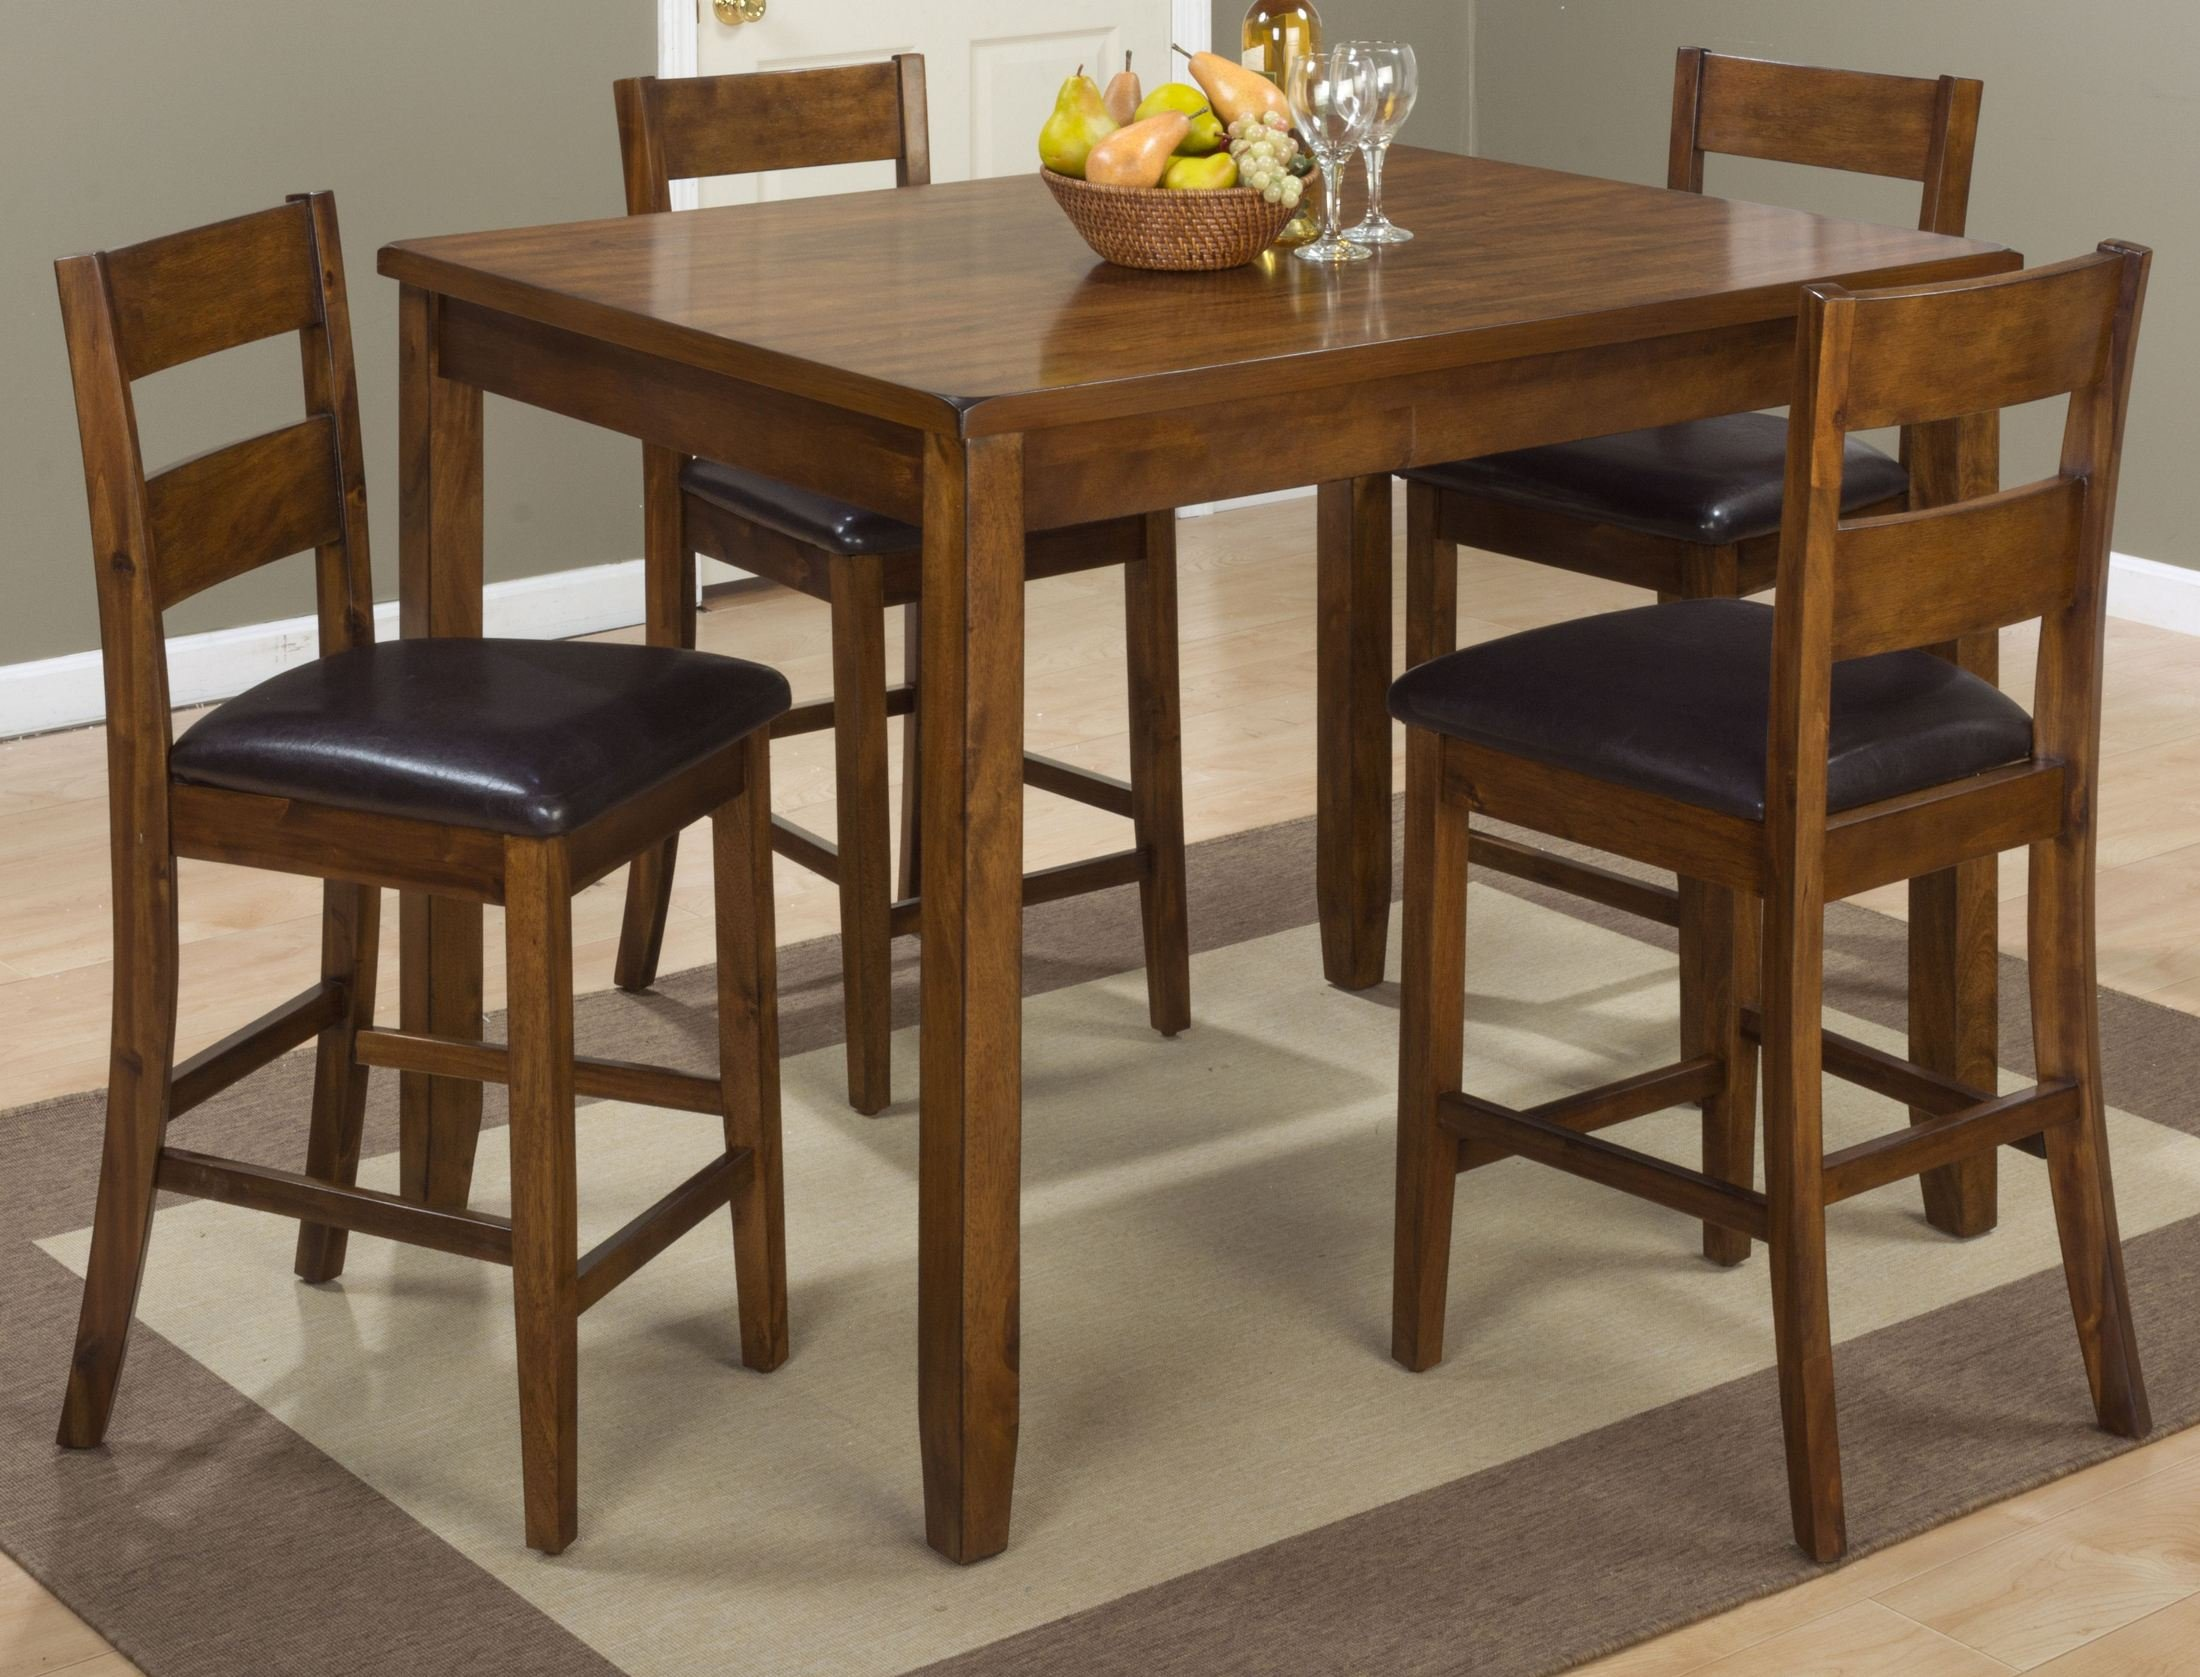 "Jofran: 592, Rustic Prairie, 5 Pack Counter Height Set, Counter Height Table, 36""W X 48""D X 36""H, Barstool, 17""W X 18.5""D X 40""H, Plantation Mango Finish, (Set of 1)"